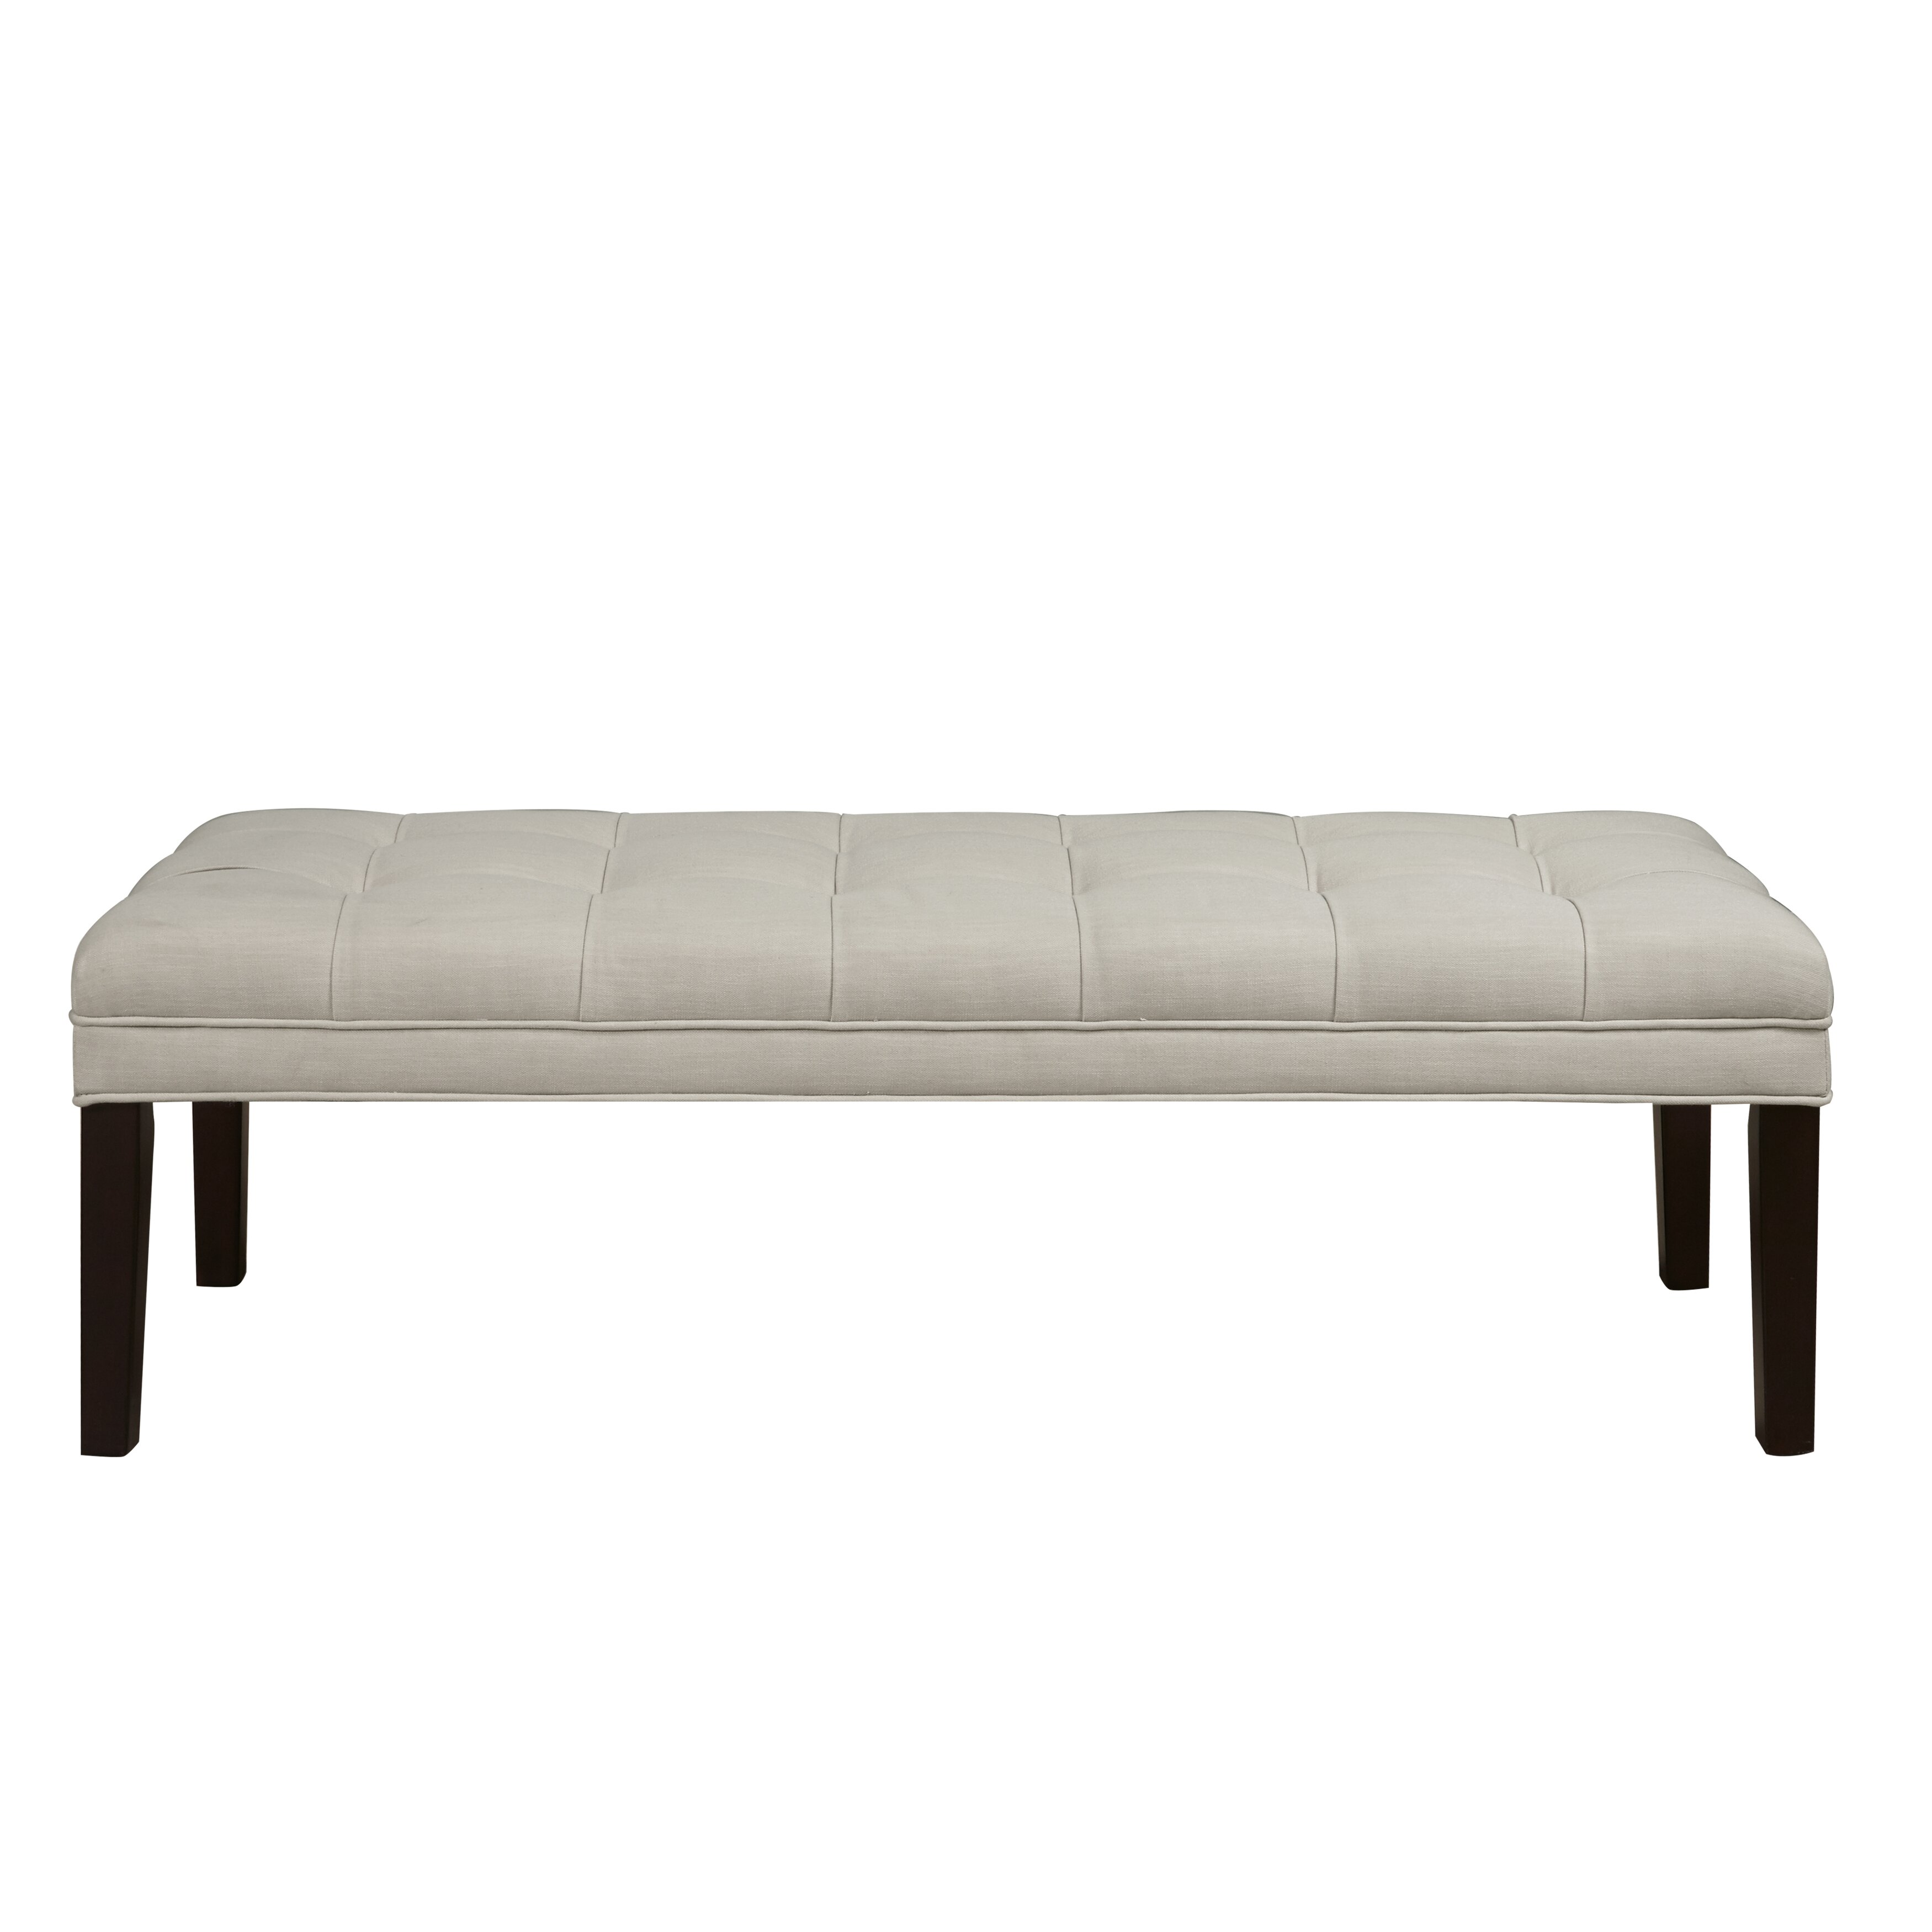 alcott hill northbrook upholstered bedroom bench reviews